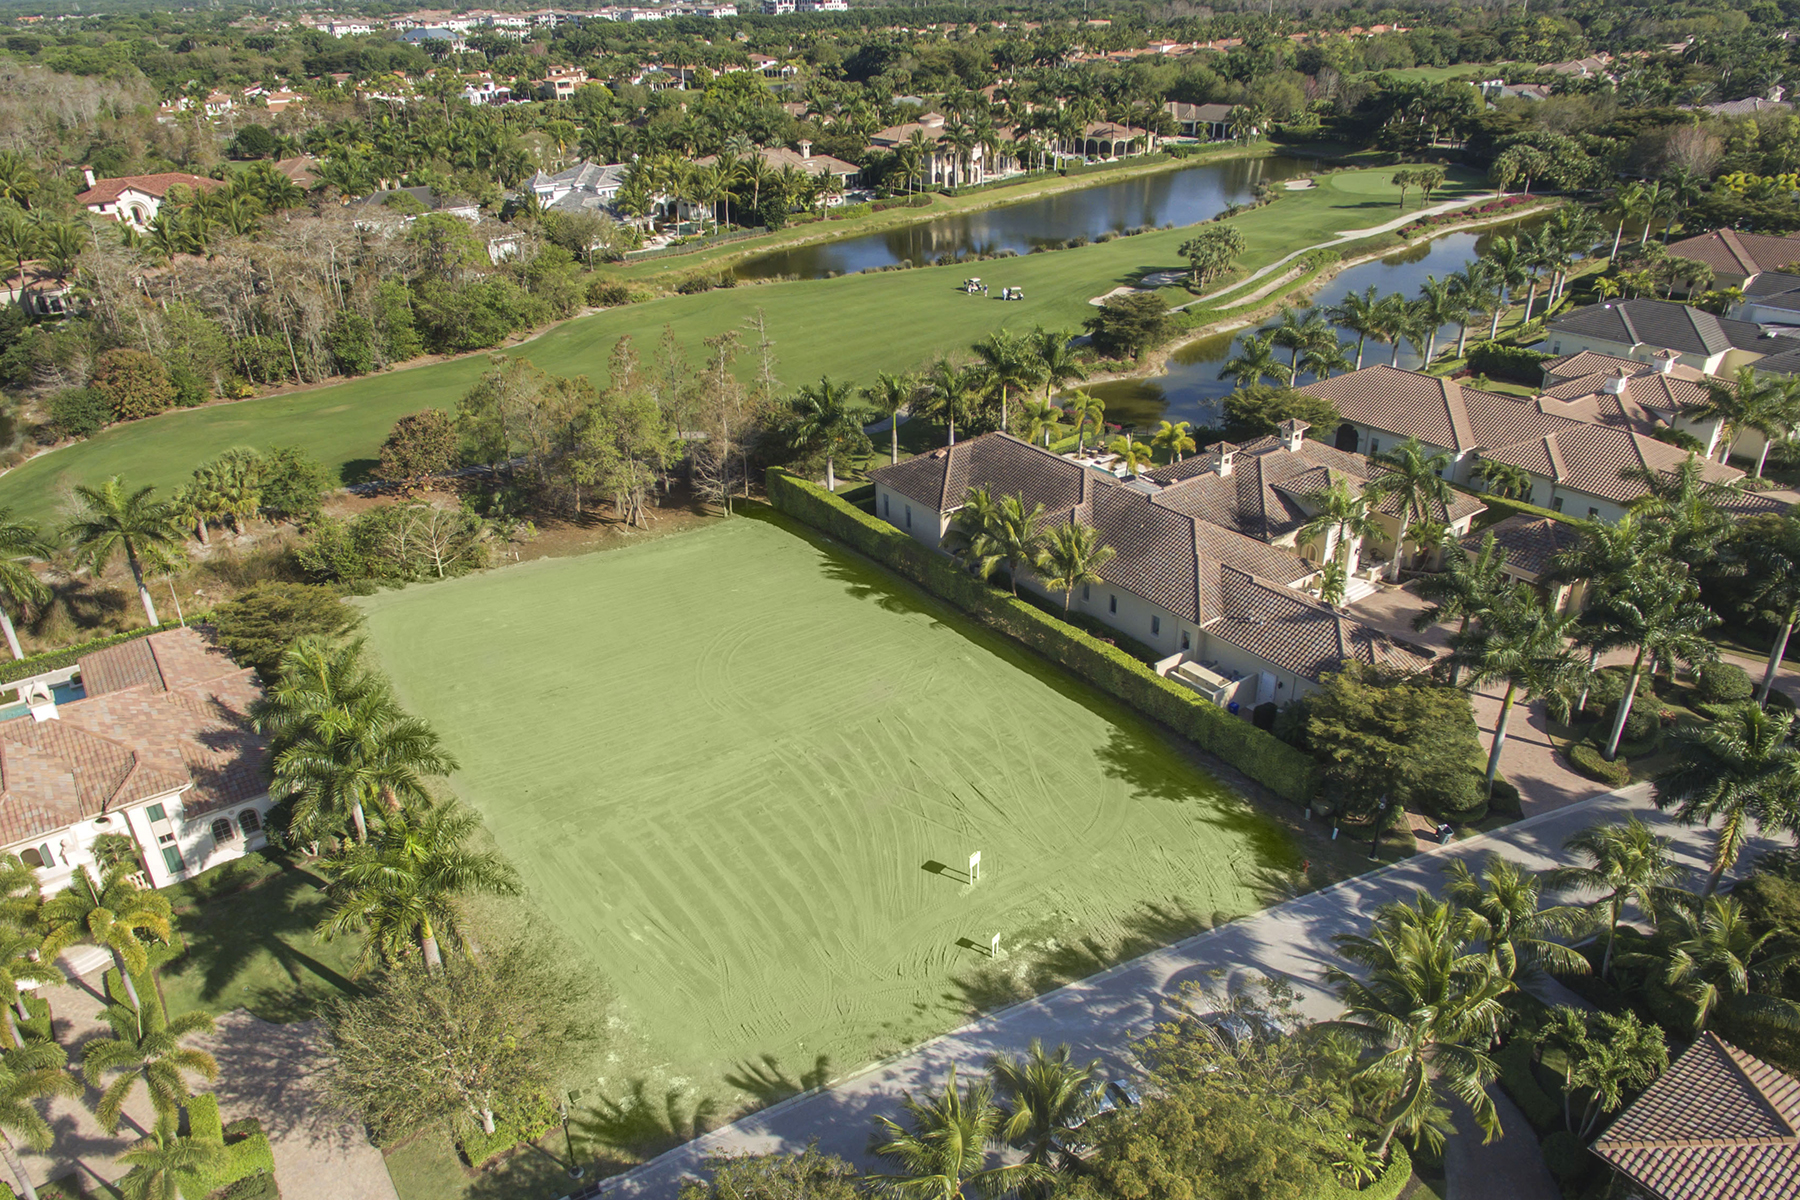 أراضي للـ Sale في ESTUARY AT GREY OAKS 1276 Osprey Trl, Naples, Florida, 34105 United States